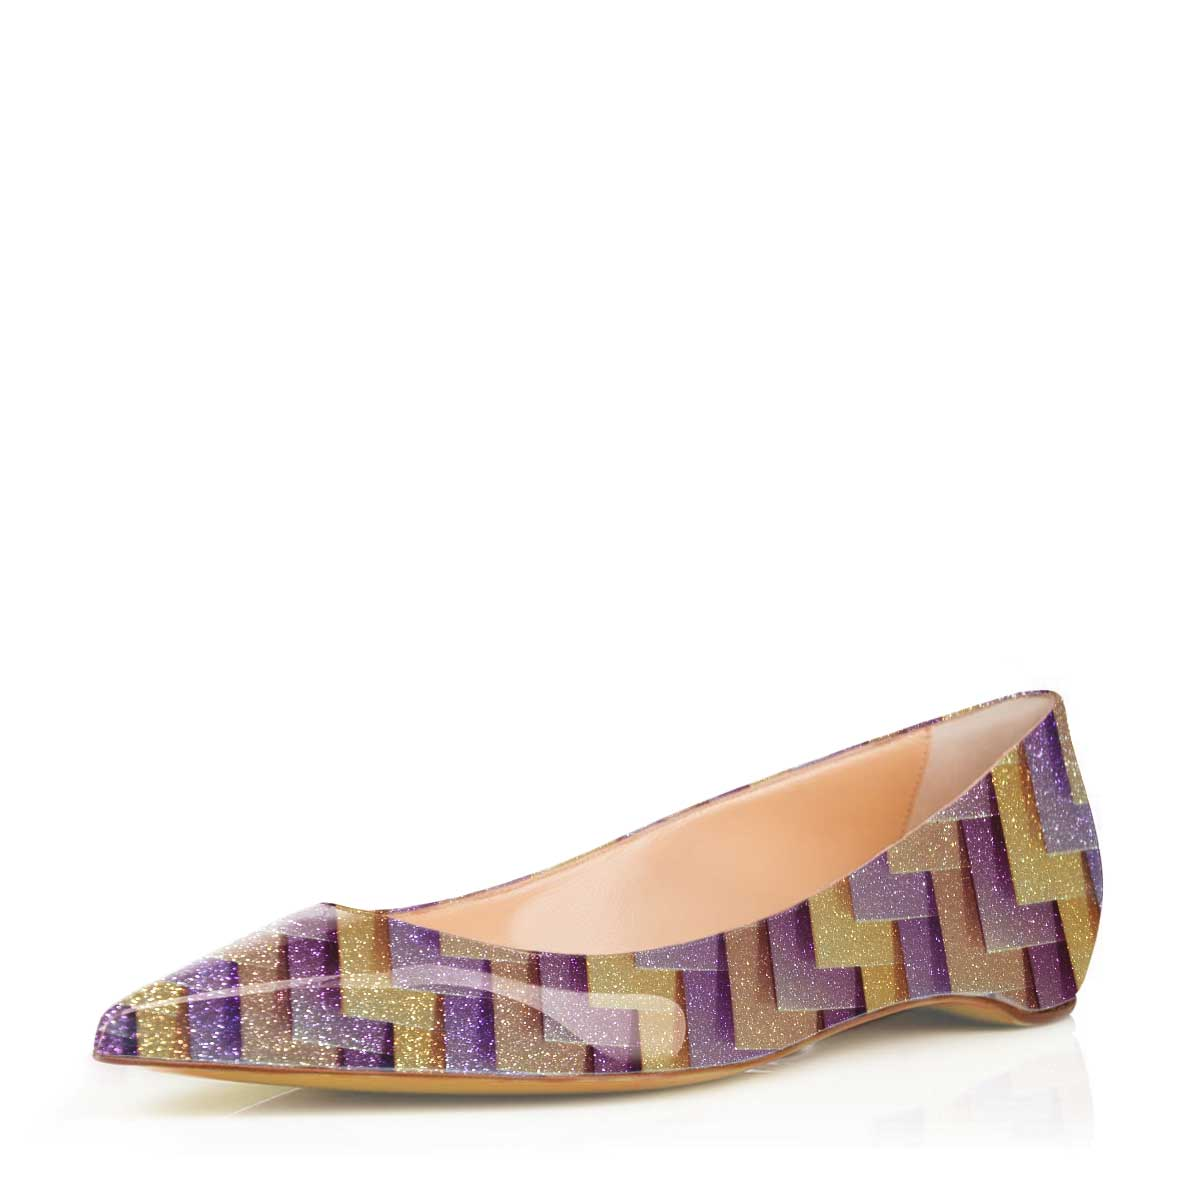 Women's Purple Crystal Dress Shoes Pointed Toe Comfortable Flats